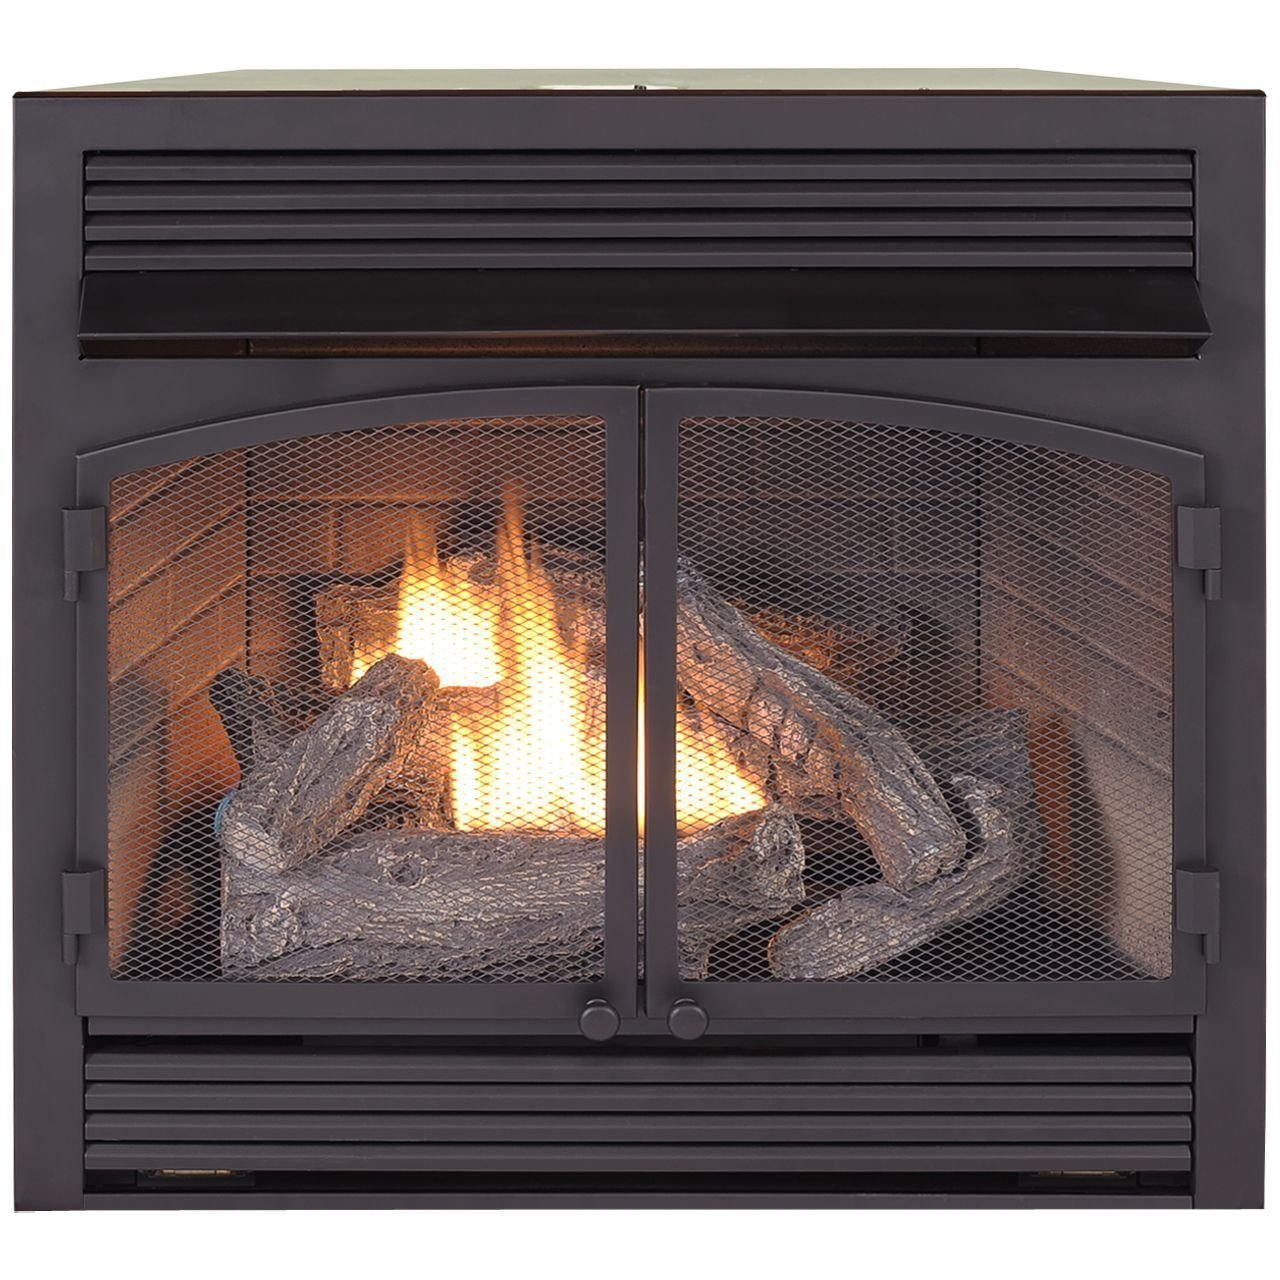 Duluth Forge Dual Fuel Ventless Fireplace Insert-32,000 BTU, Remote Control, FDF400RT-ZC, Black by Duluth Forge